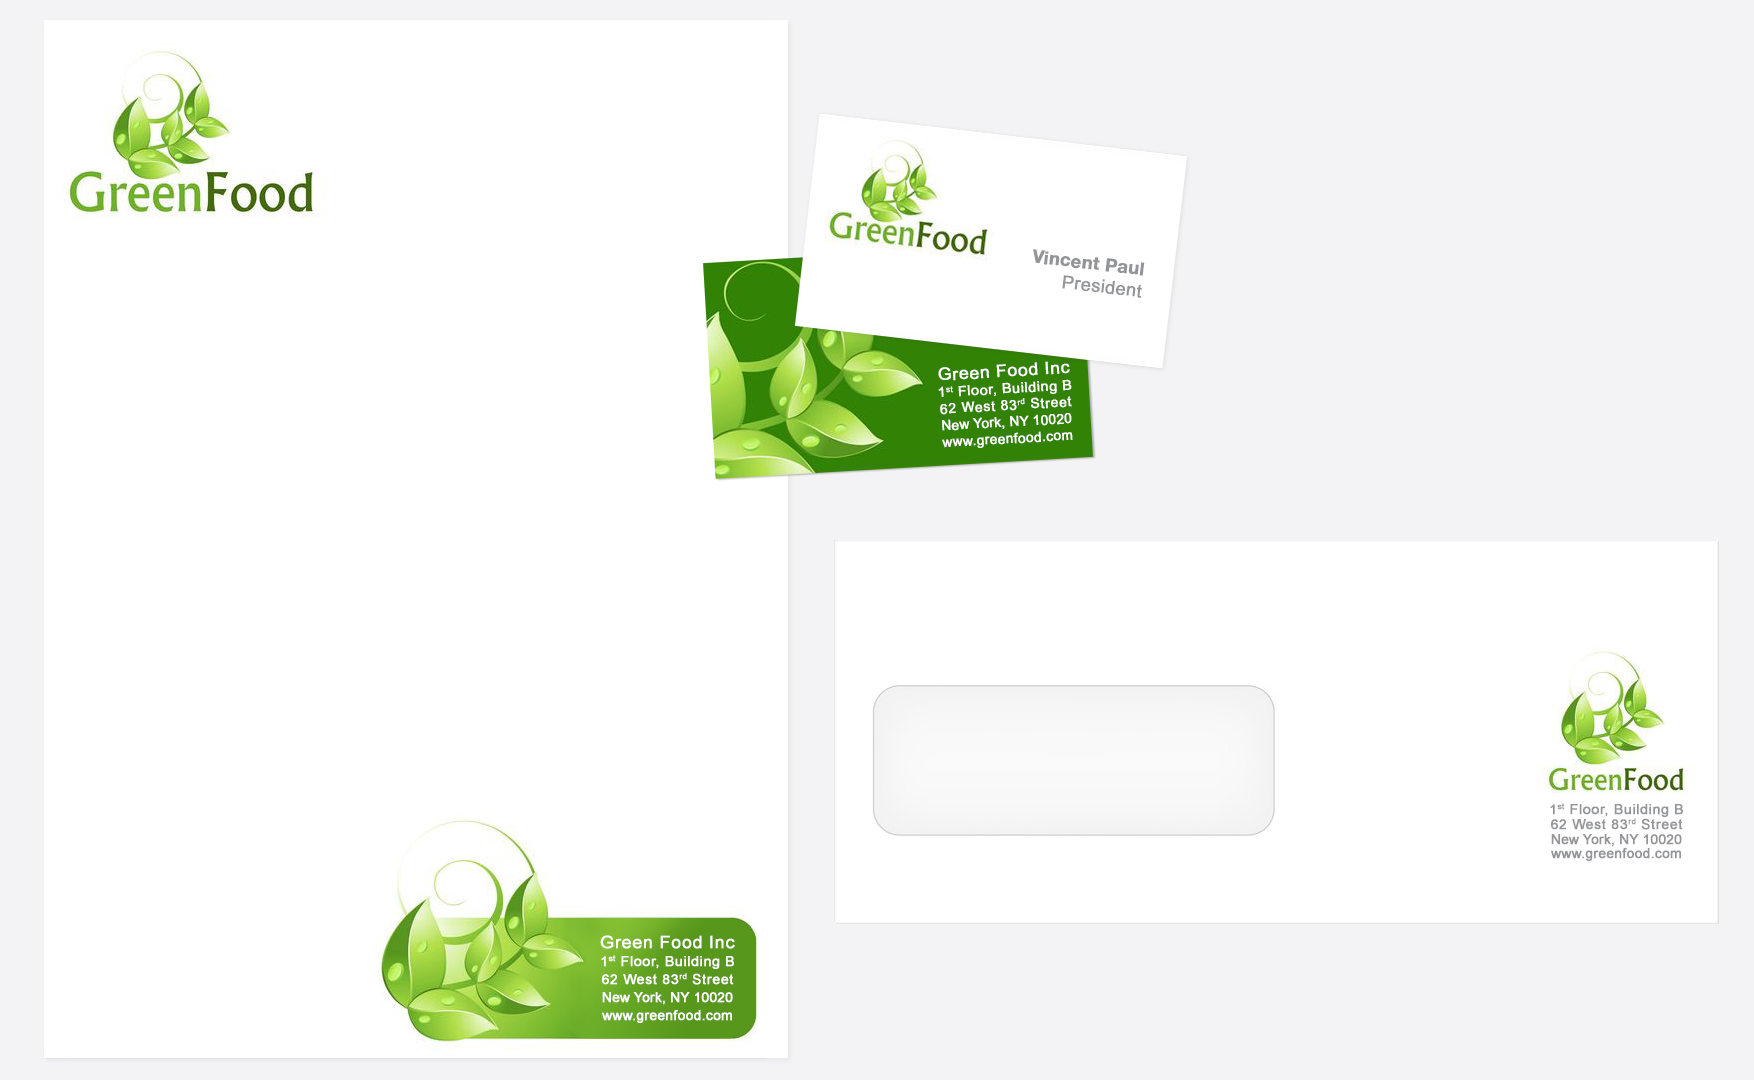 Letterhead, Business Cards and Envelopes: Conolly Printing